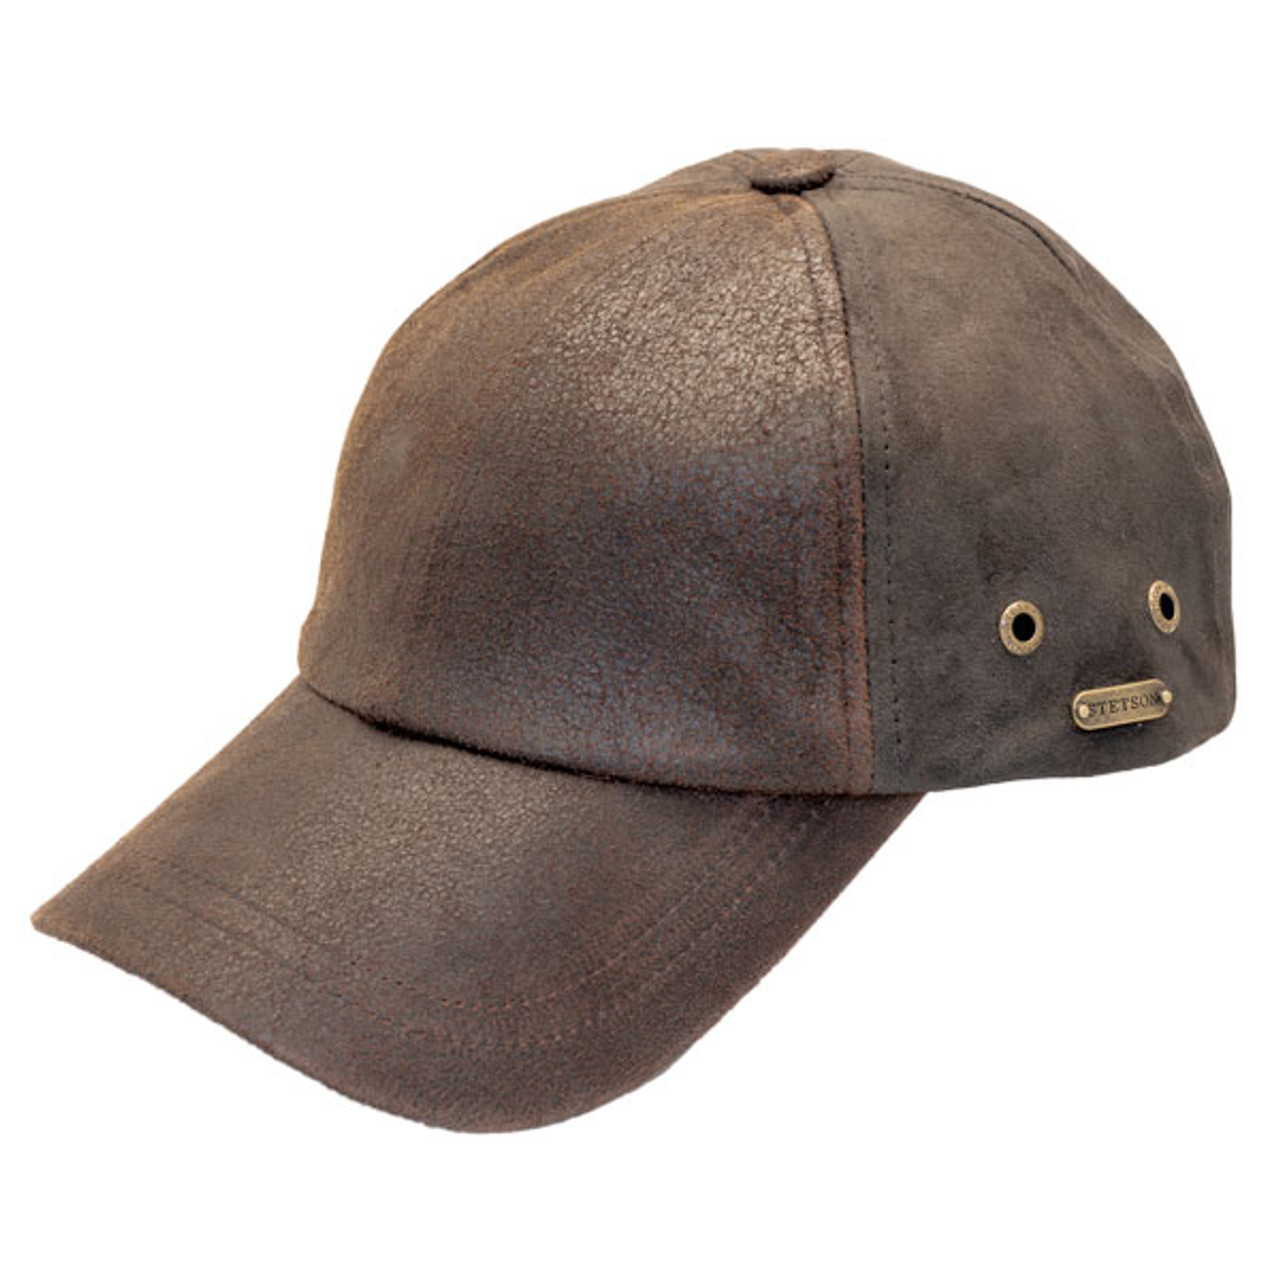 19d2b5ac Stetson | Distressed Leather Baseball Cap | Hats Unlimited